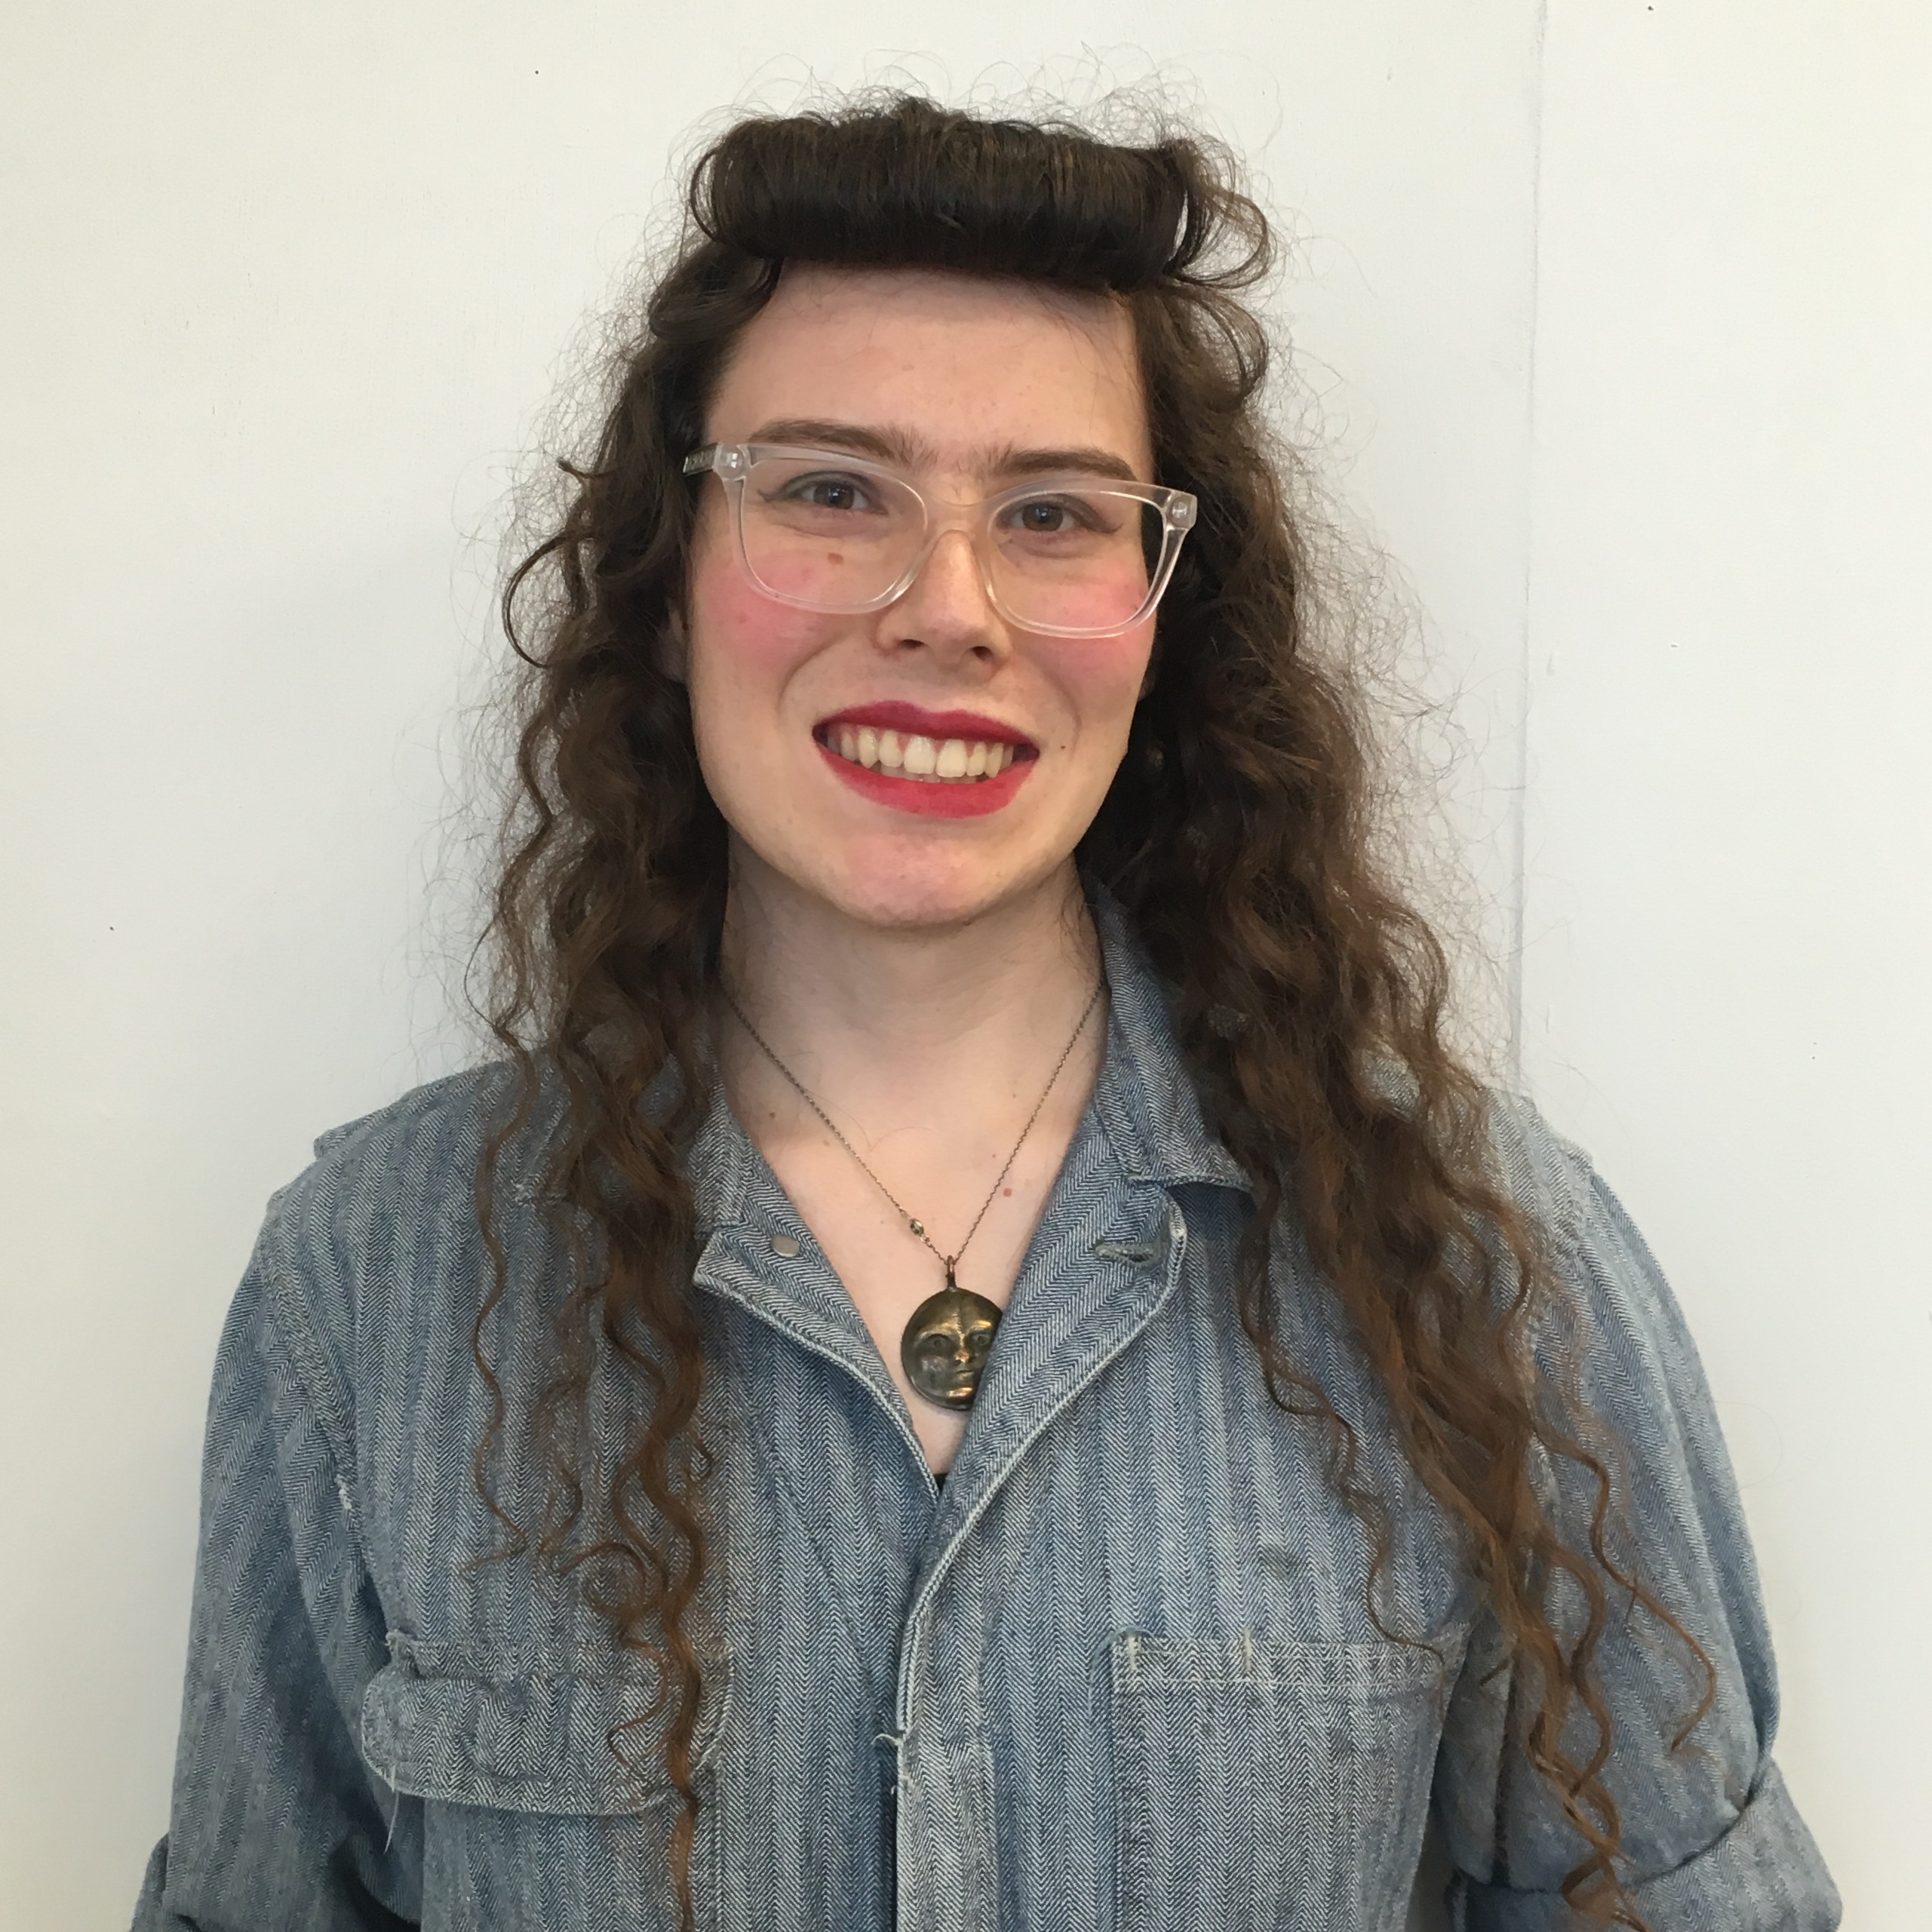 A headshot of Morgan, a young white woman with long curly brown hair, smiling at the camera. She is wearing glasses, red lipstick, a bronze necklace, and a blue boiler suit.